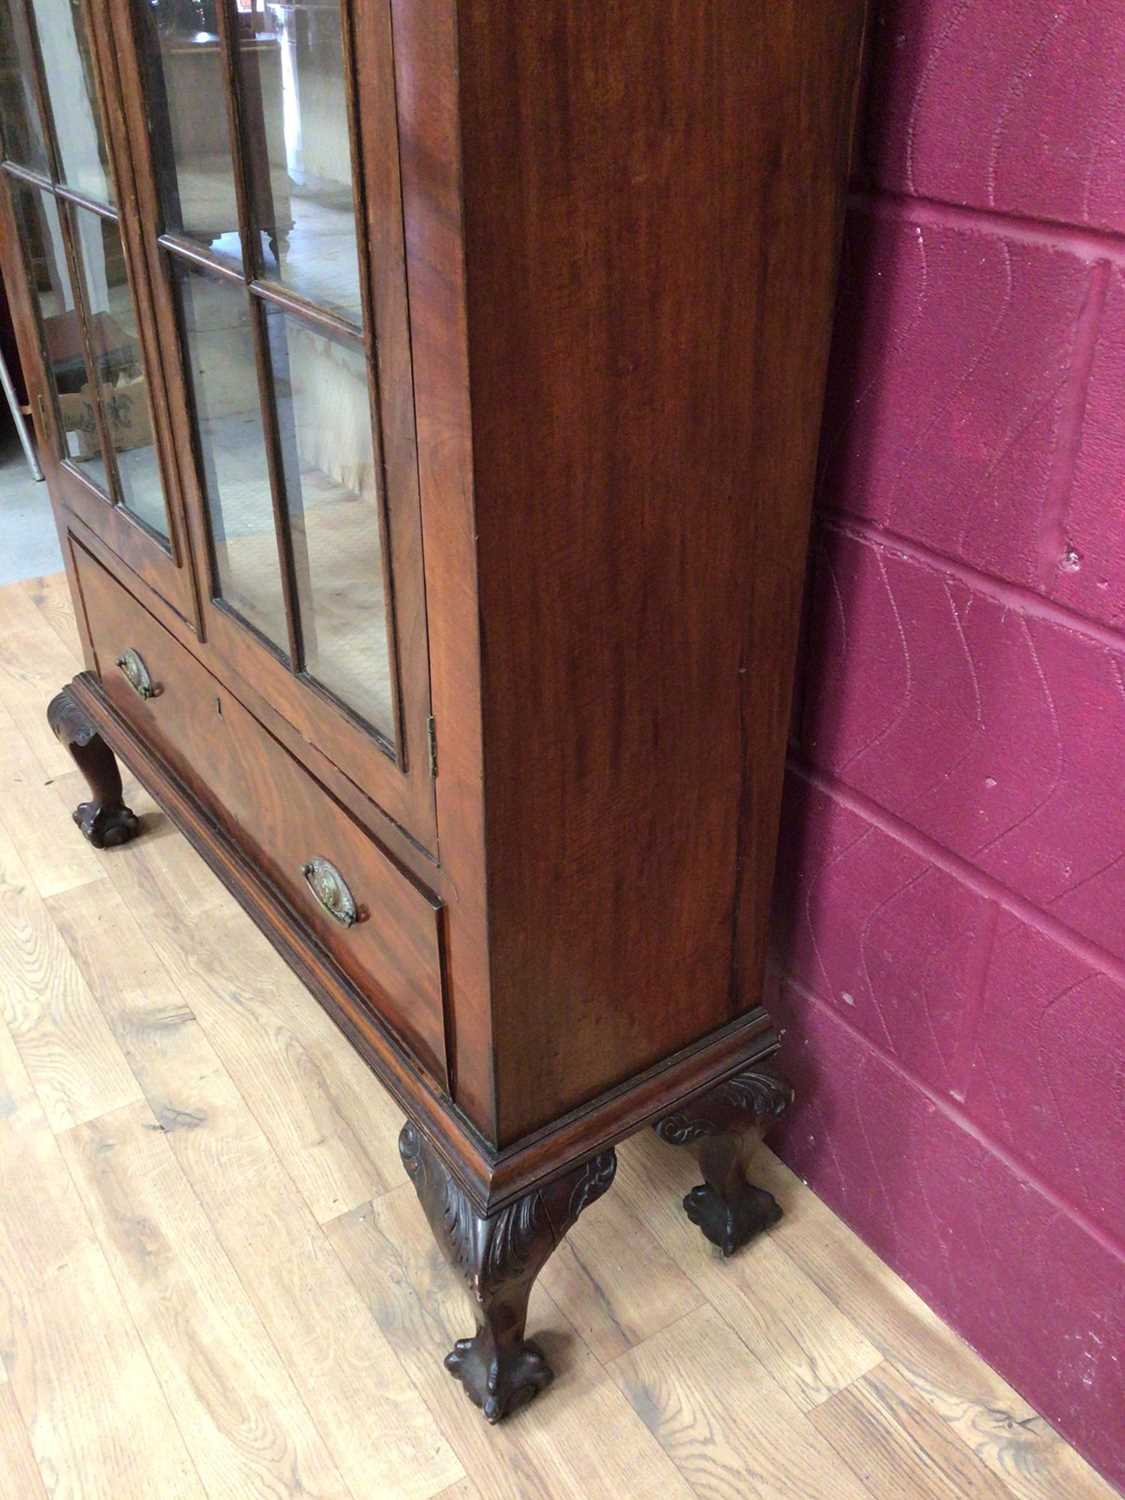 Edwardian mahogany bookcase with shelved interior enclosed by two glazed doors with drawer below on - Image 7 of 7